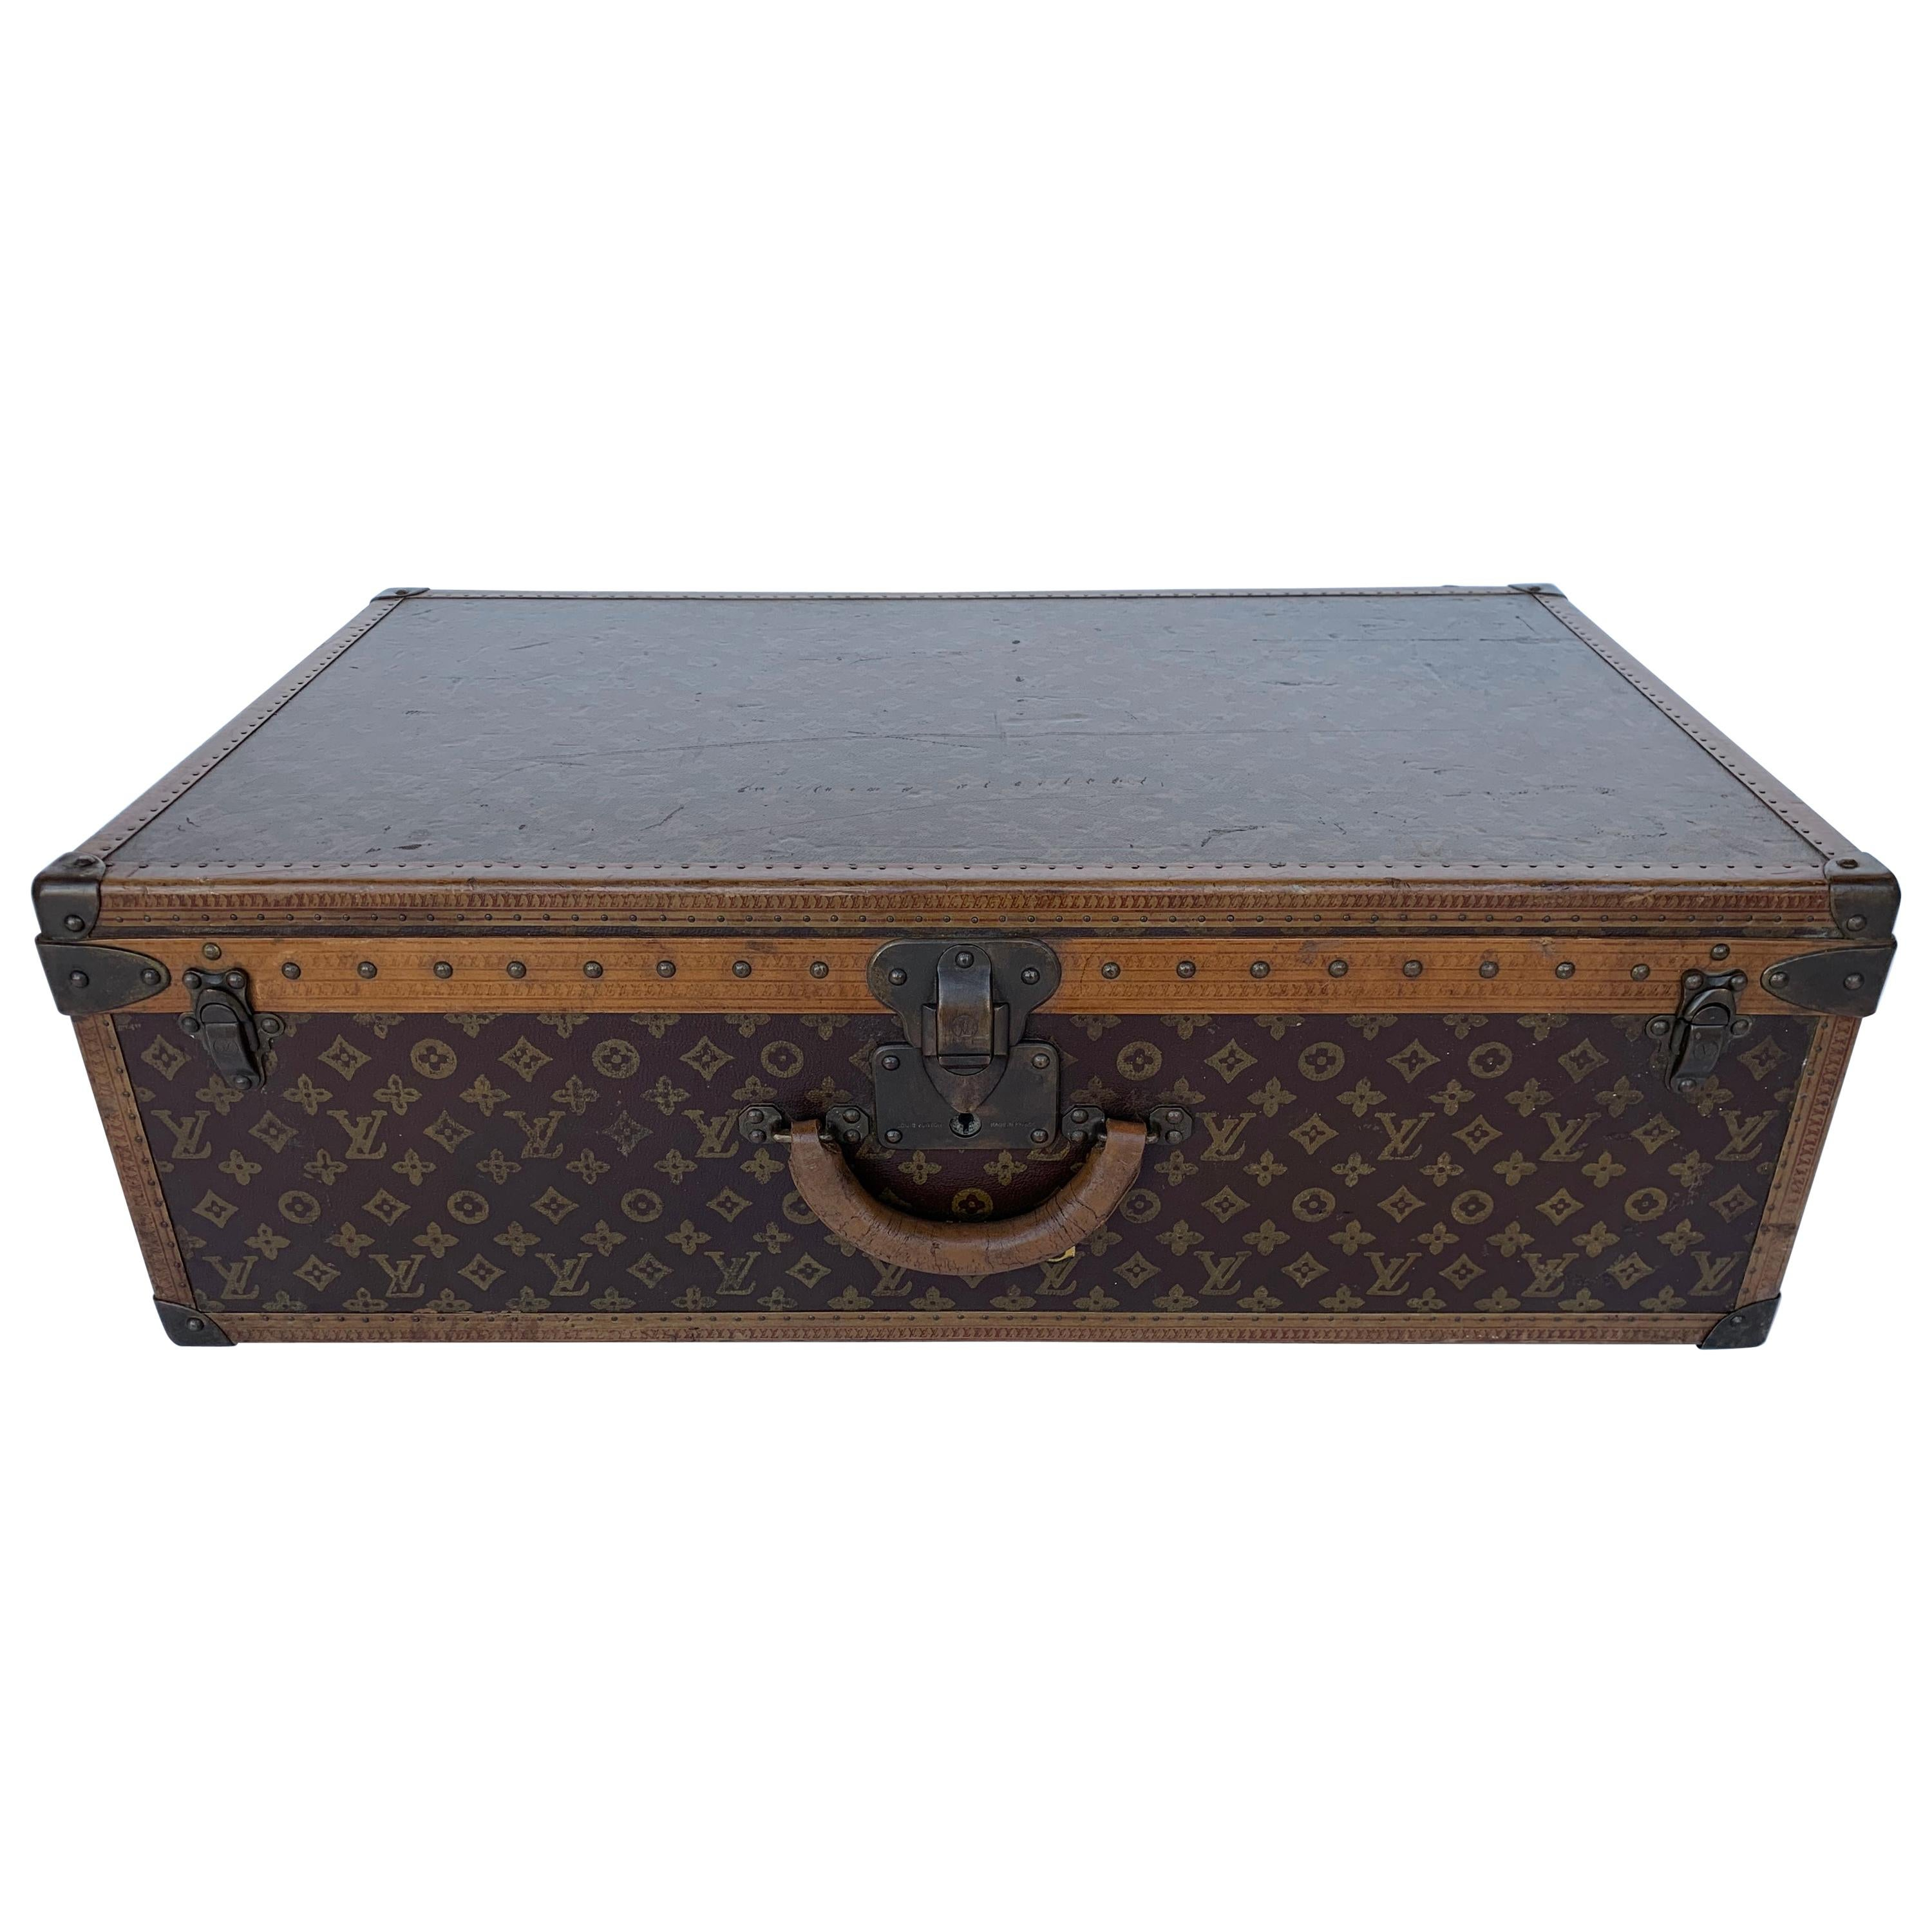 Superb Louis Vuitton Furniture Trunks Luggage More 279 For Creativecarmelina Interior Chair Design Creativecarmelinacom